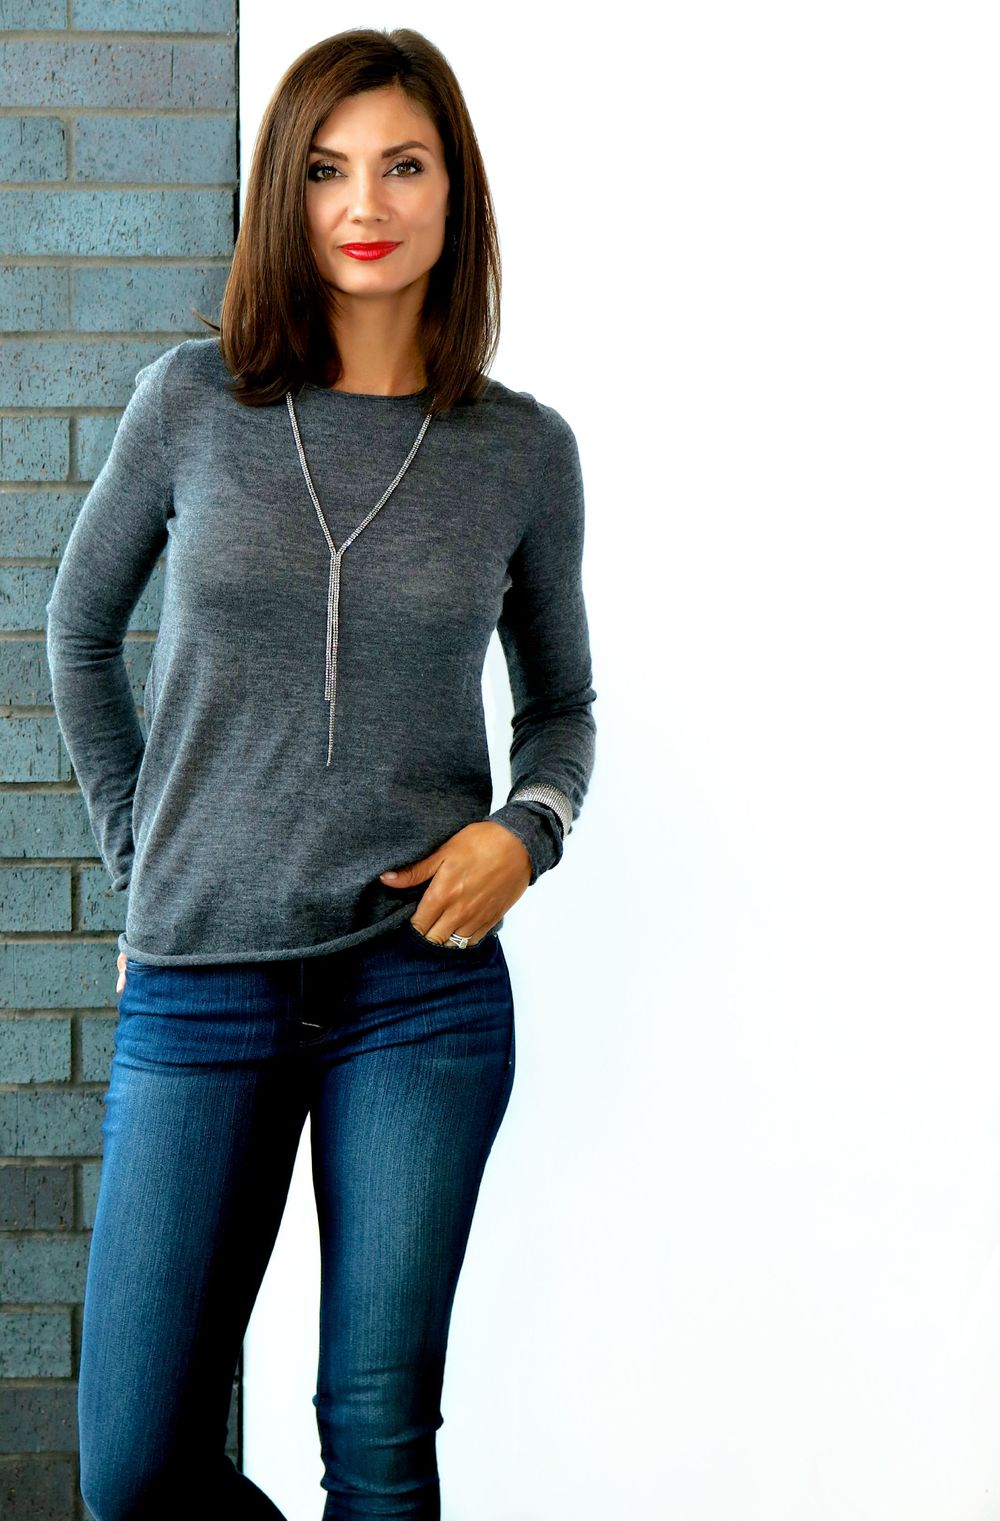 Christopher Fischer ANIKA Cashmere Crew Neck in Charcoal